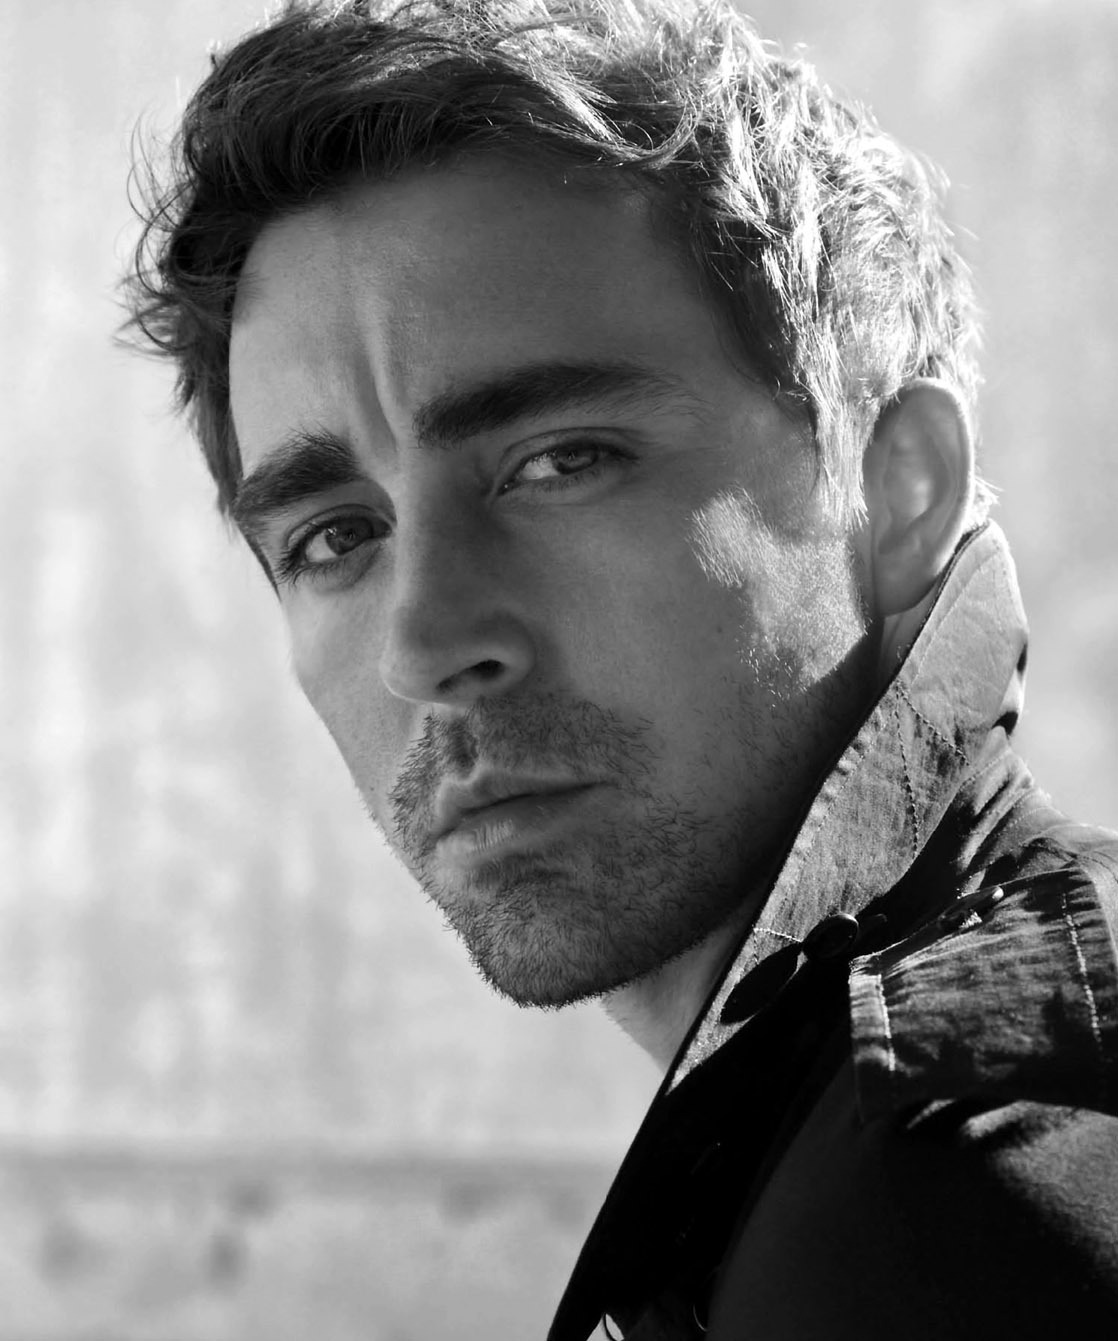 1118x1341 - Lee Pace Wallpapers 24